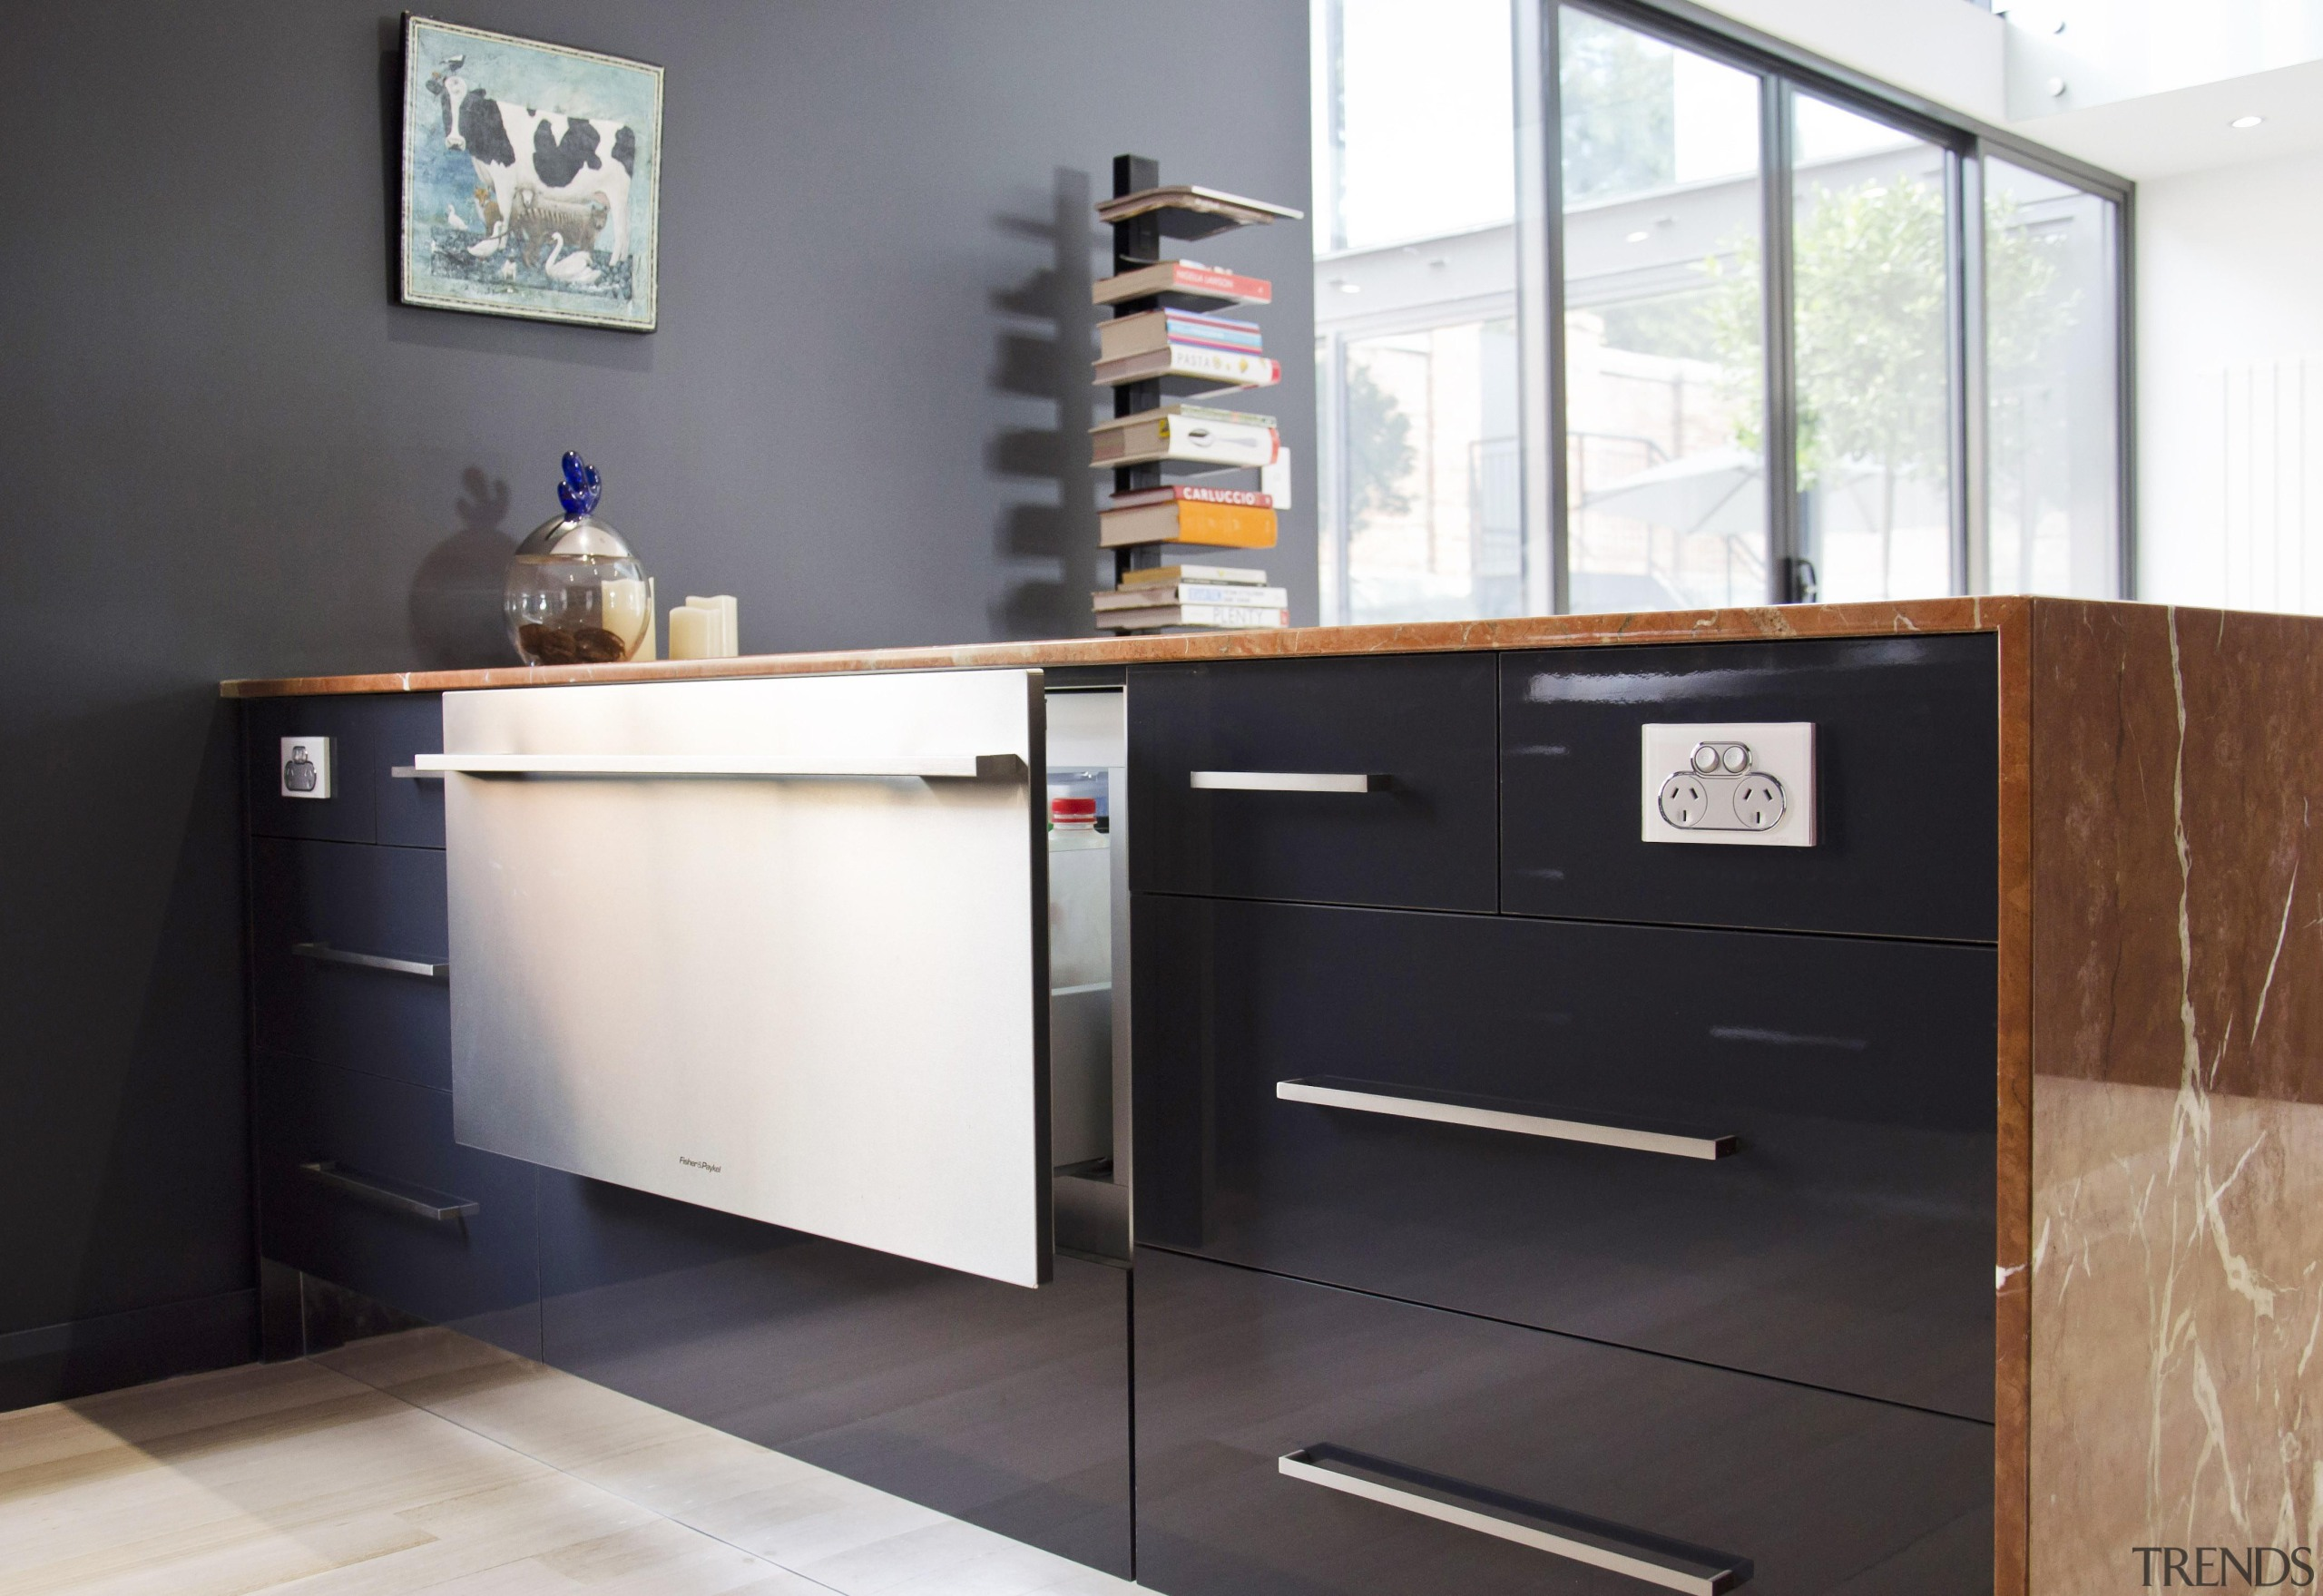 Winner Kitchen Design and Kitchen of the Year cabinetry, chest of drawers, countertop, floor, furniture, kitchen, product design, sideboard, black, white